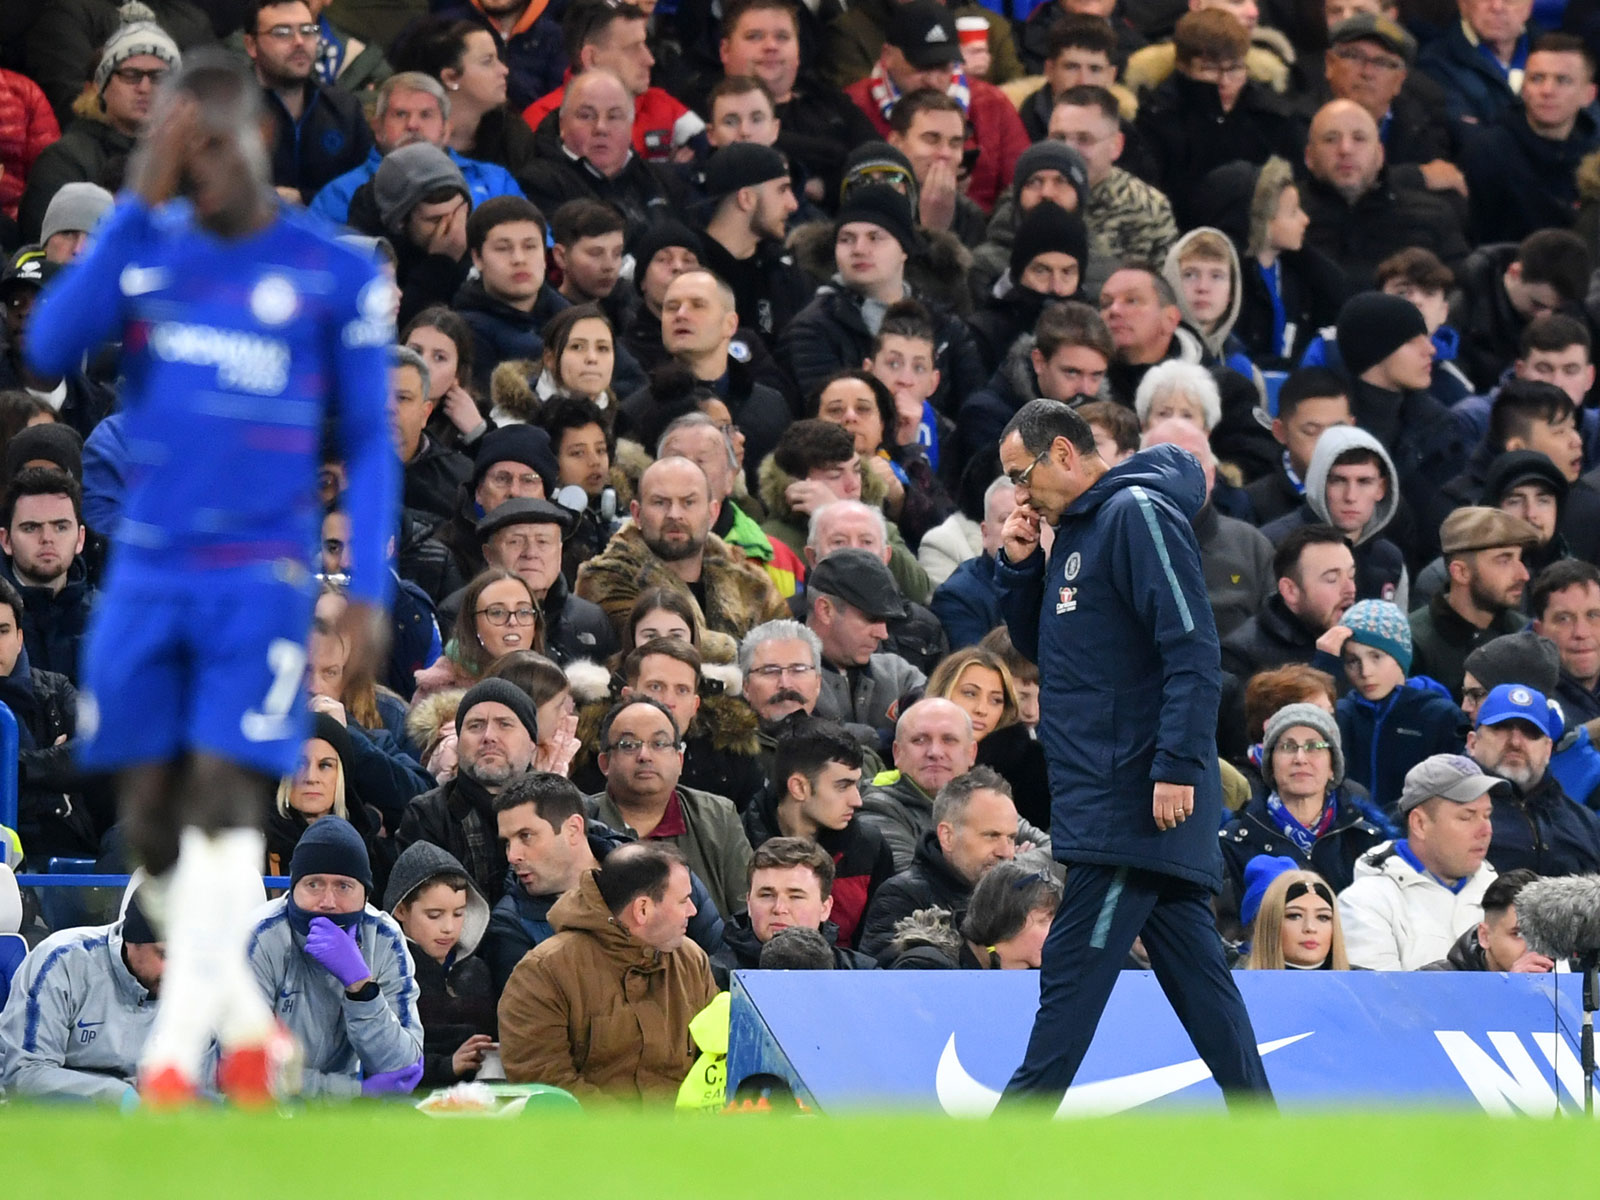 Maurizio Sarri expresses his frustration during Chelsea's FA Cup clash vs. Manchester United